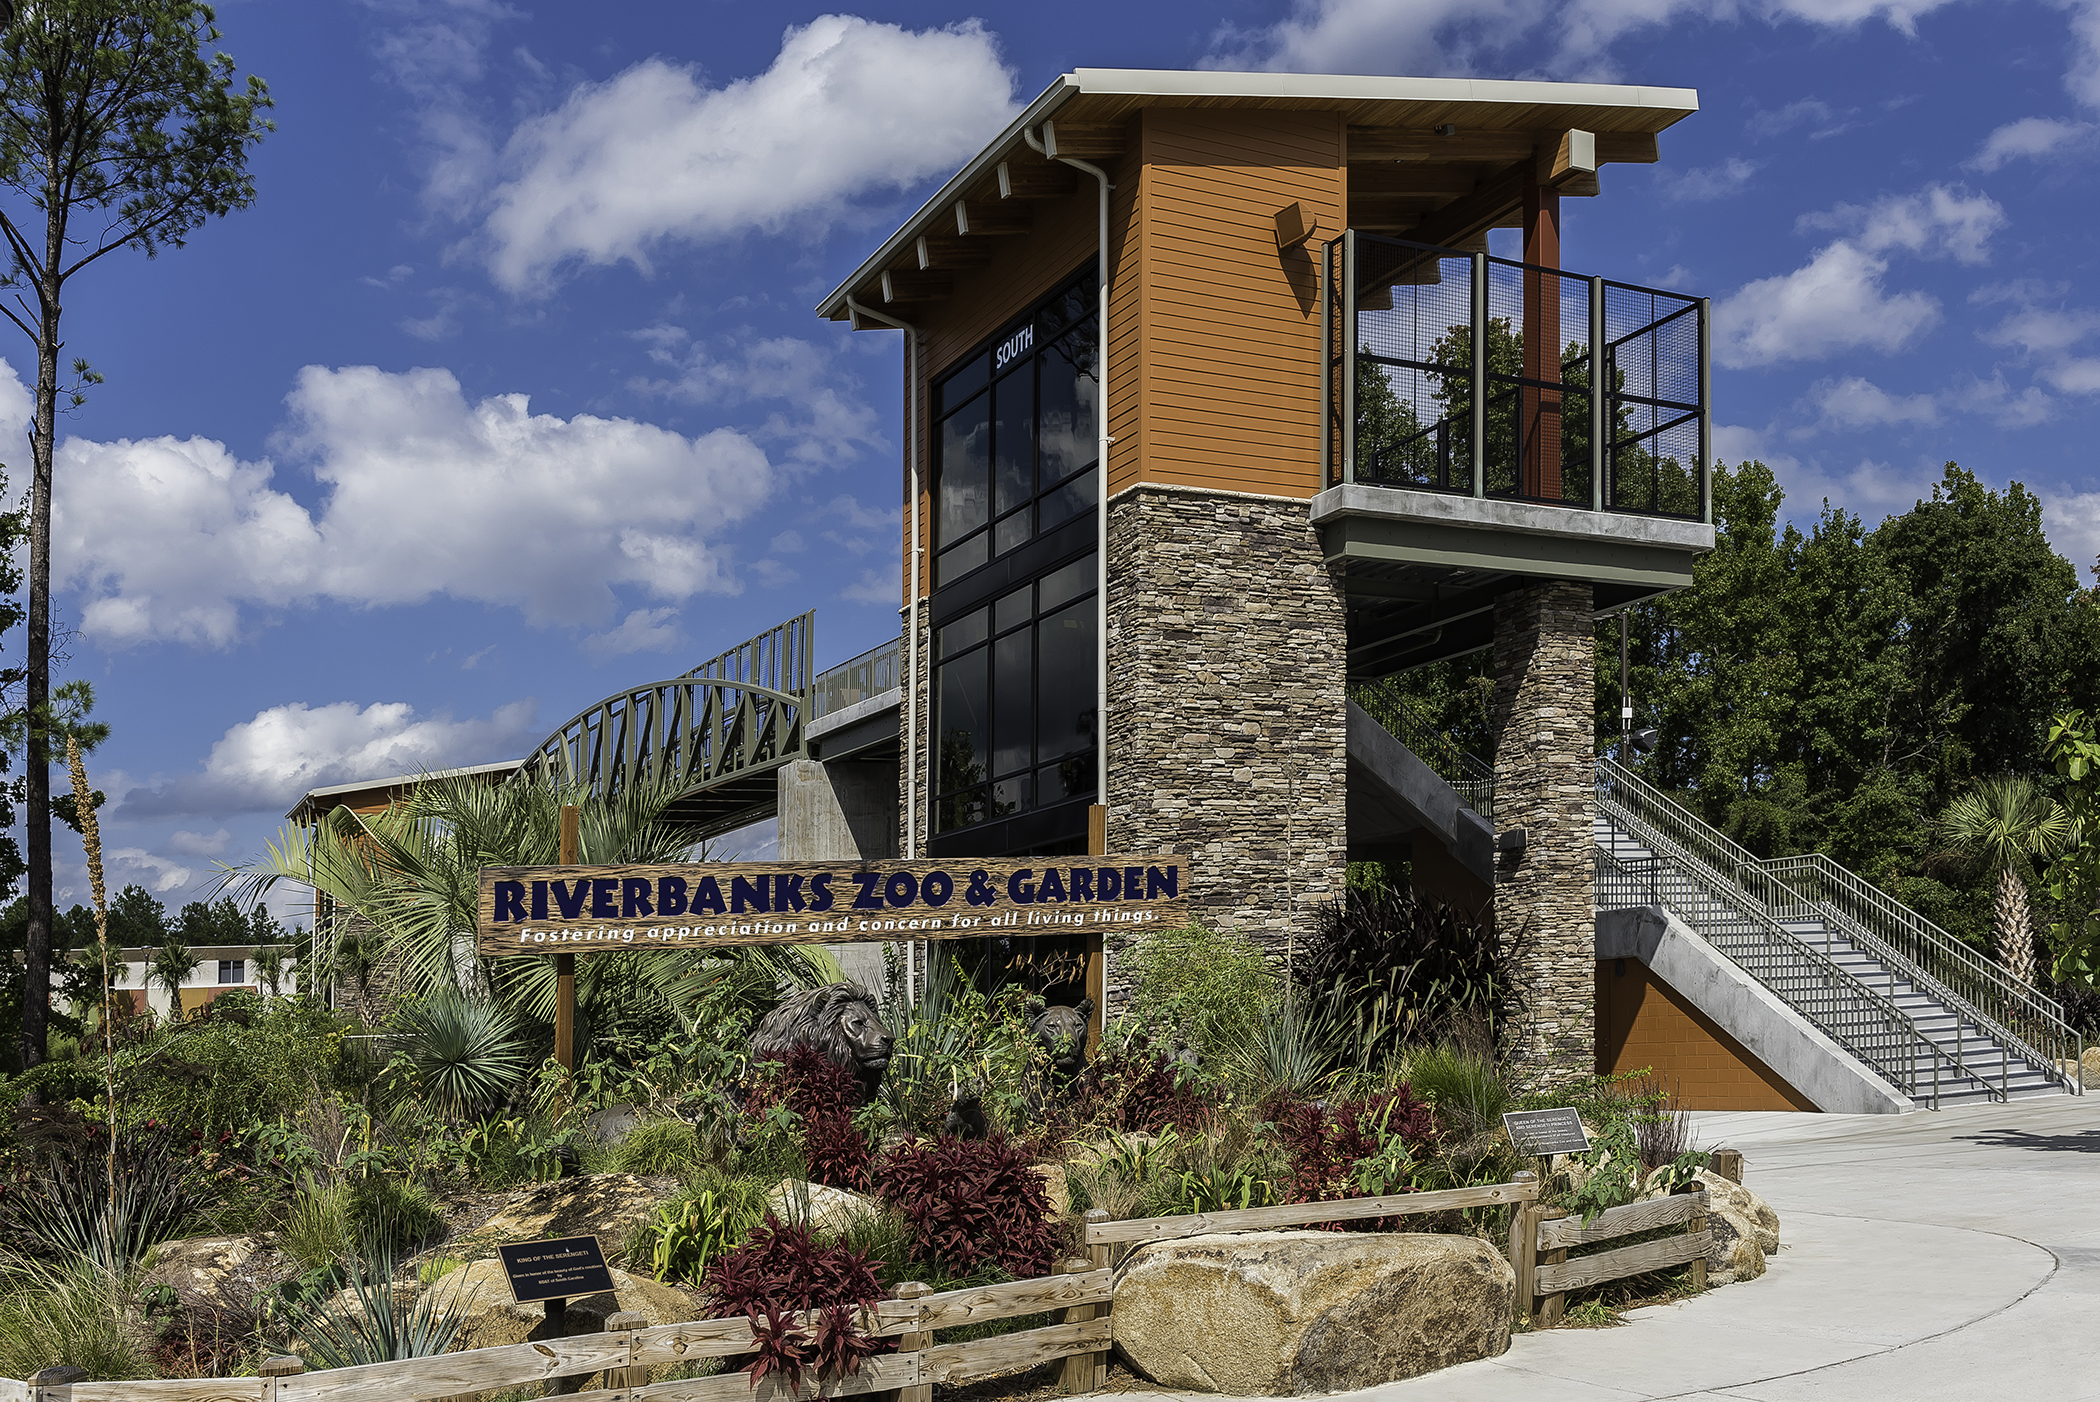 Riverbanks Zoo and Garden